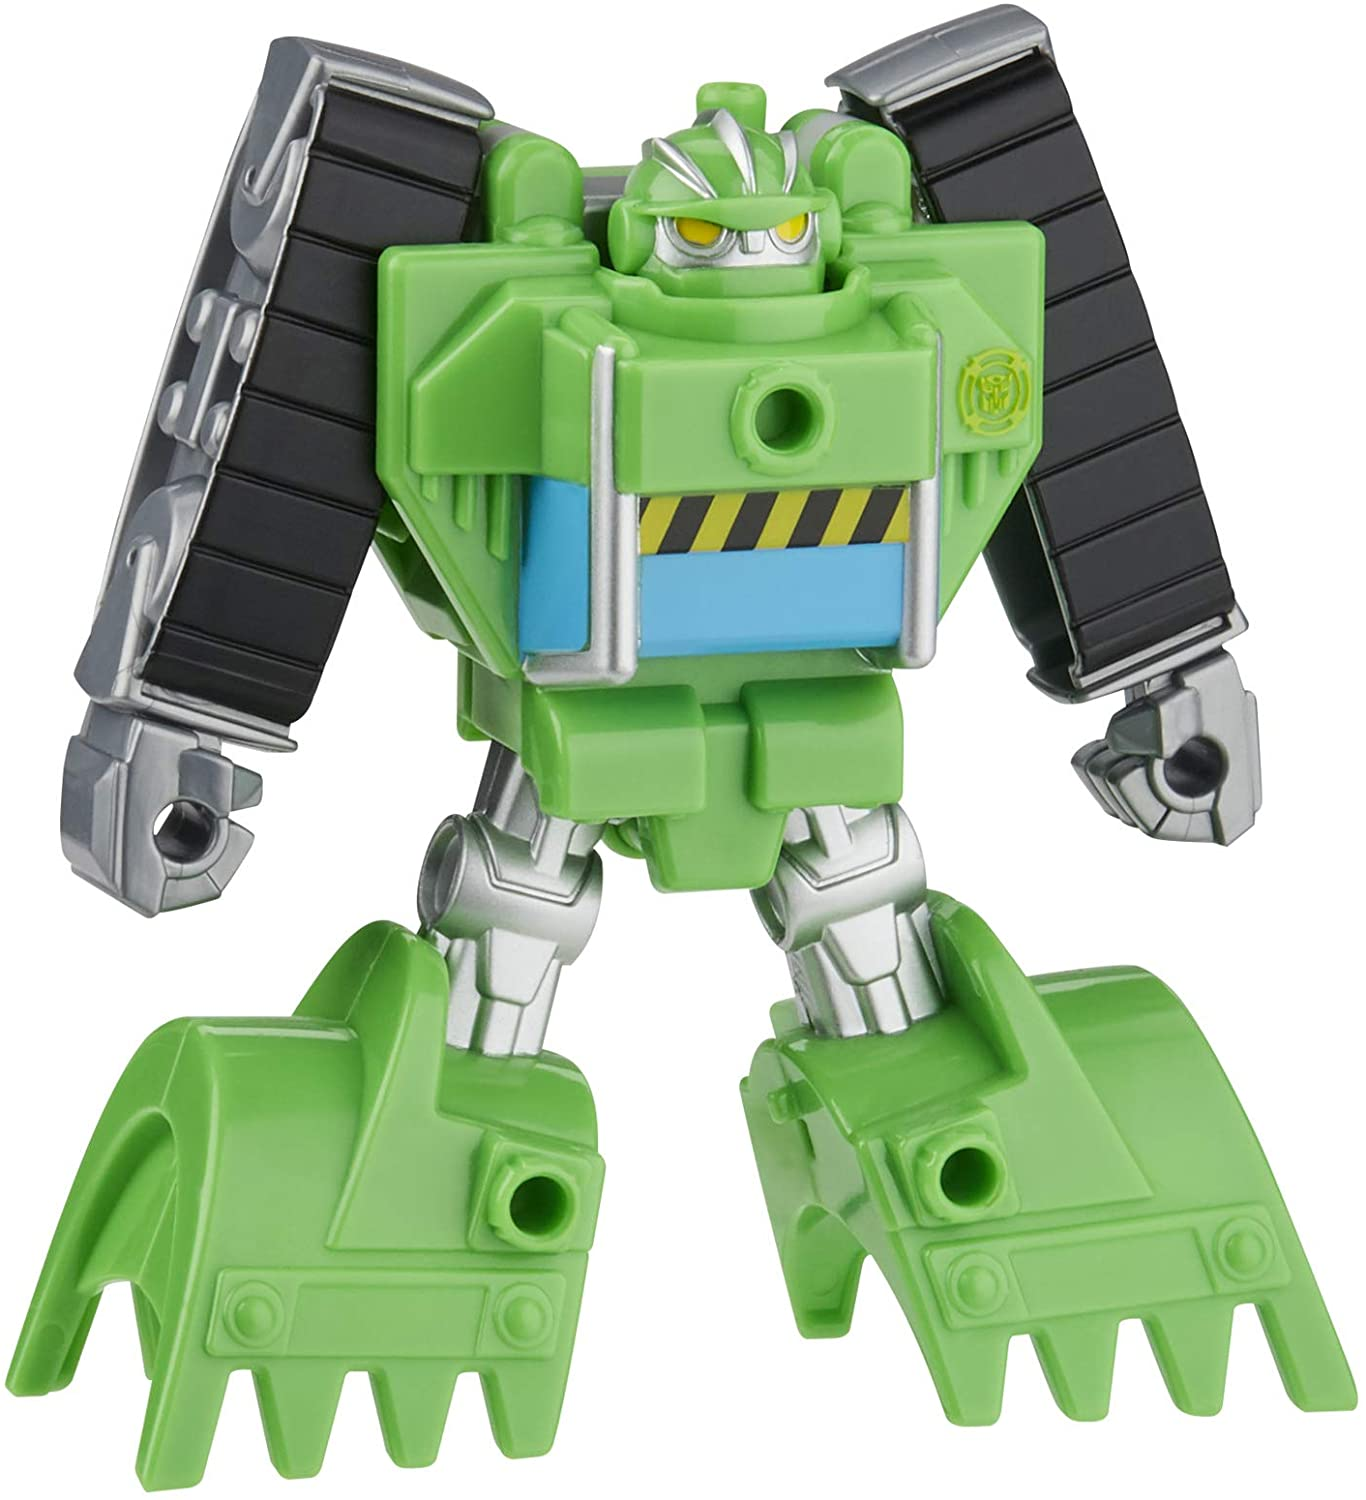 4.5 Inch Action Figure Toys for Kids Ages 3 and Up Playskool Heroes Transformers Rescue Bots Academy Boulder the Construction-Bot Converting Toy